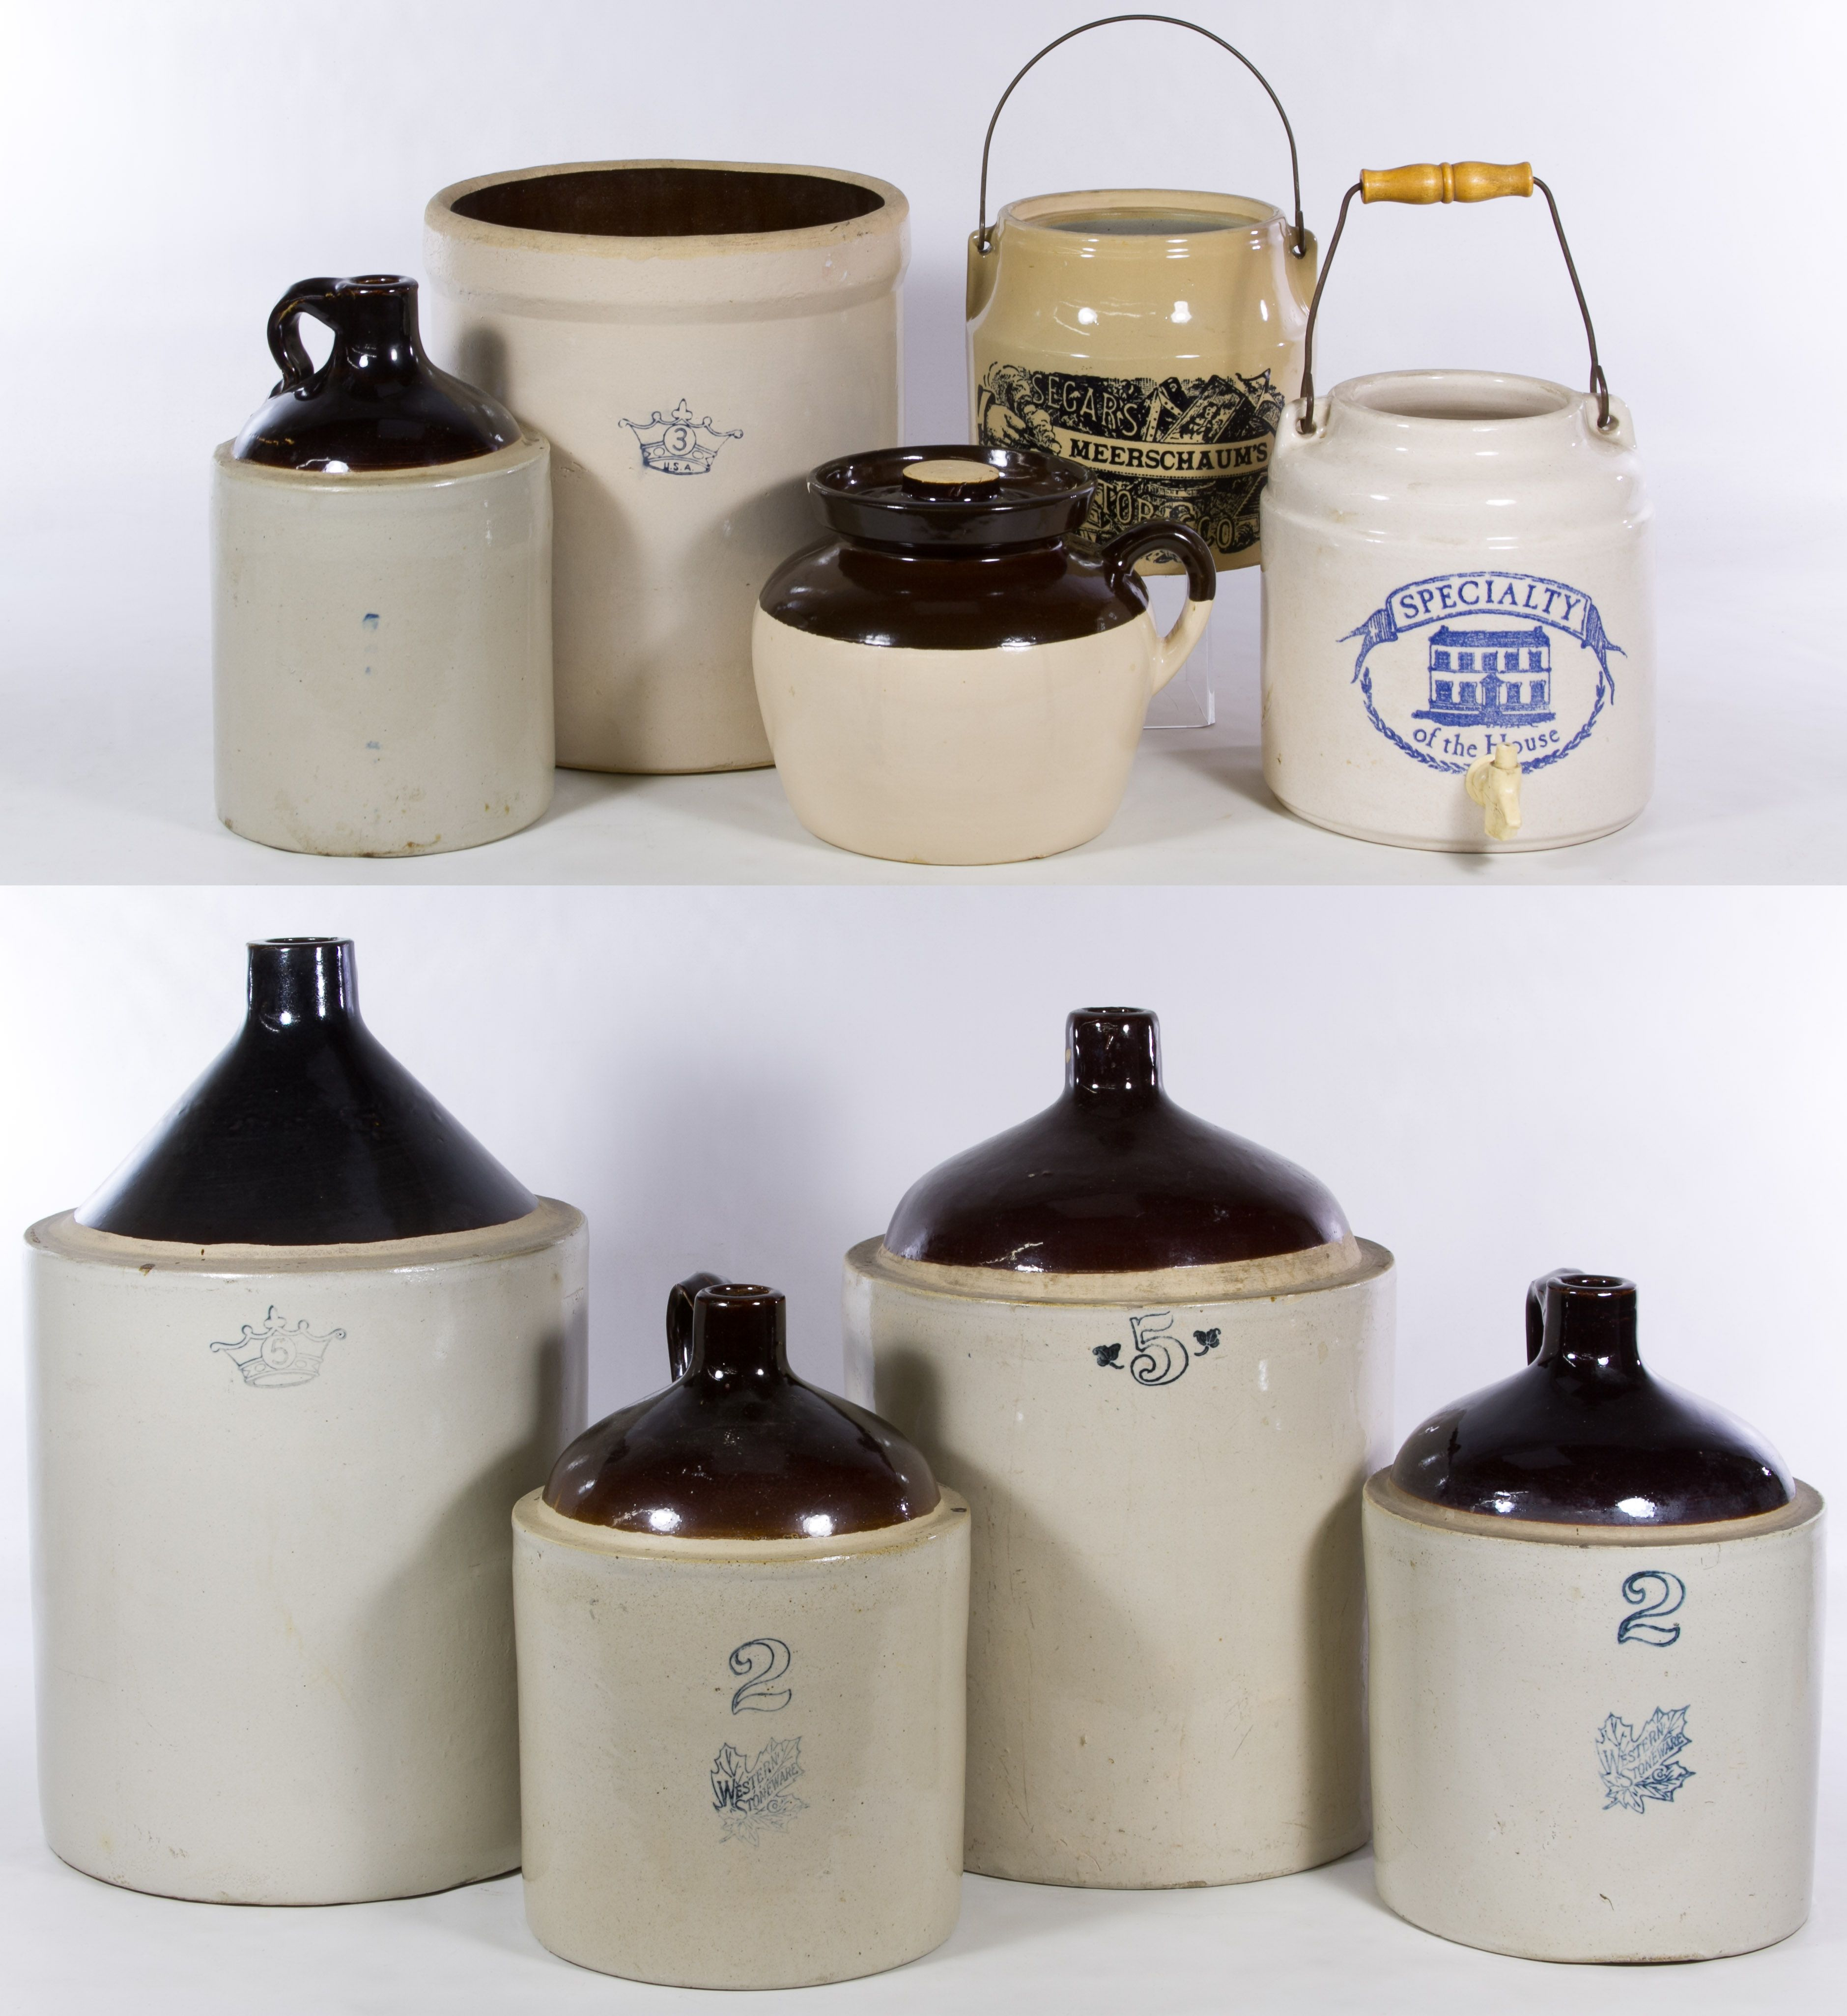 Lot 461: Jug and Crock Assortment; Including five brown top jugs, two metal bale crocks, a covered crock with a handle and an open crock with examples from Western Stoneware, Meerschaum, Specialty and a crown mark